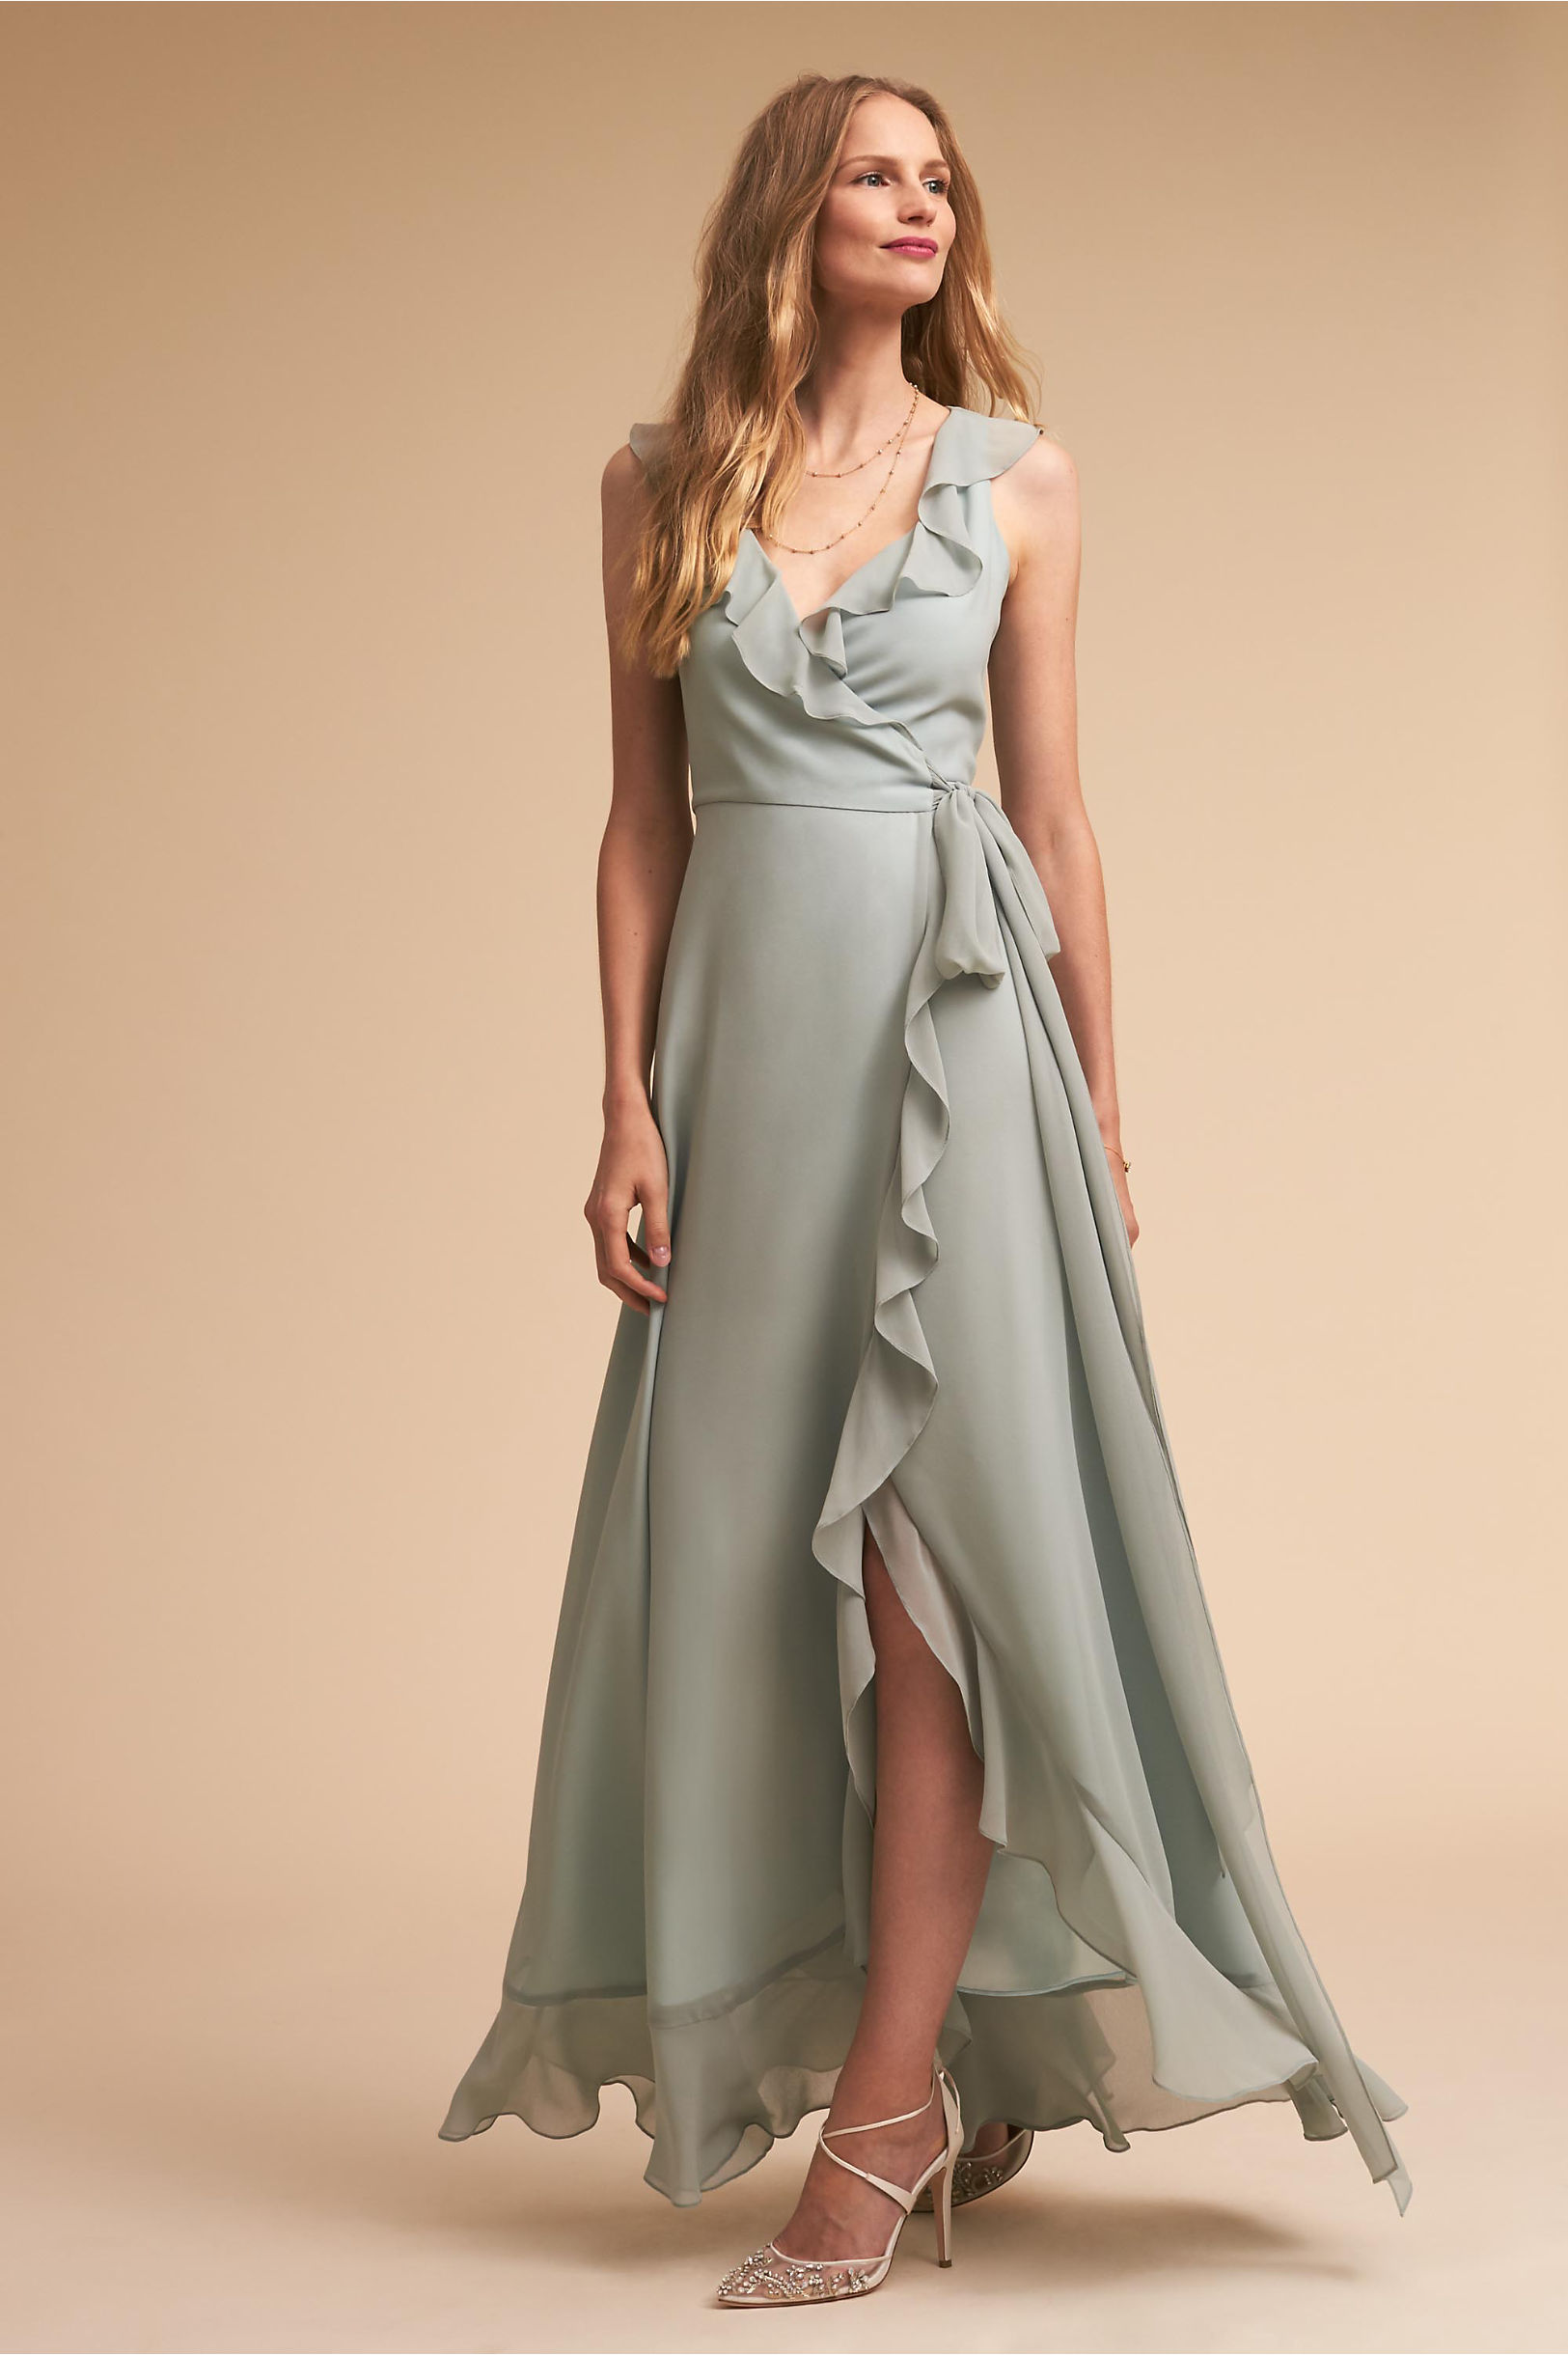 Green bridesmaid dresses bhldn julliard dress ombrellifo Choice Image